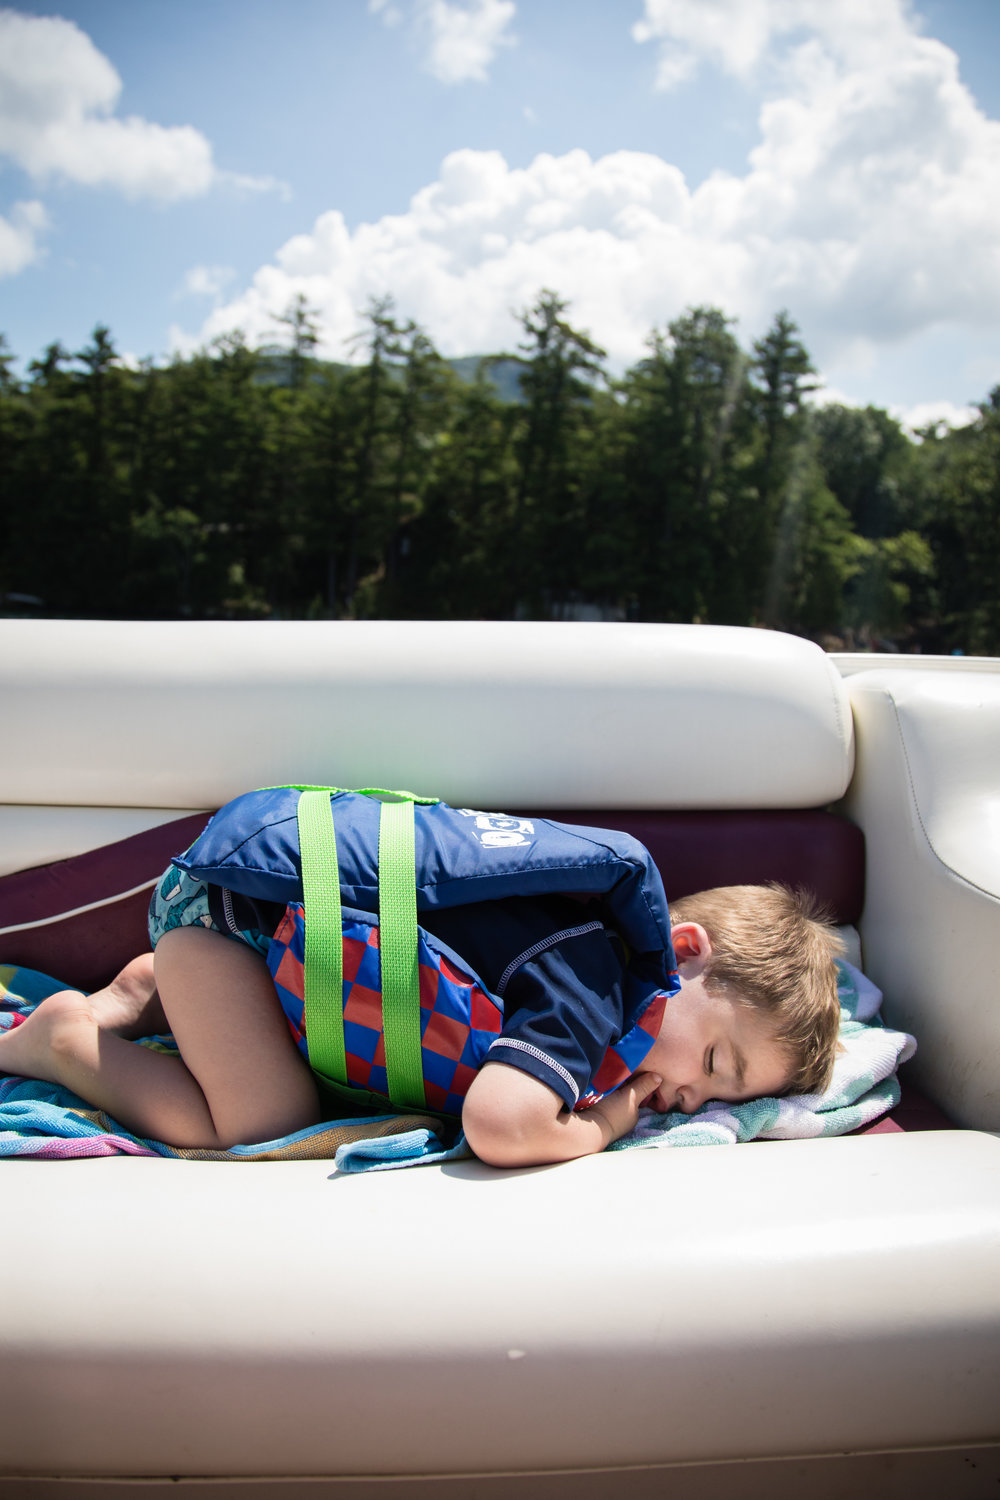 Nap time on the boat.